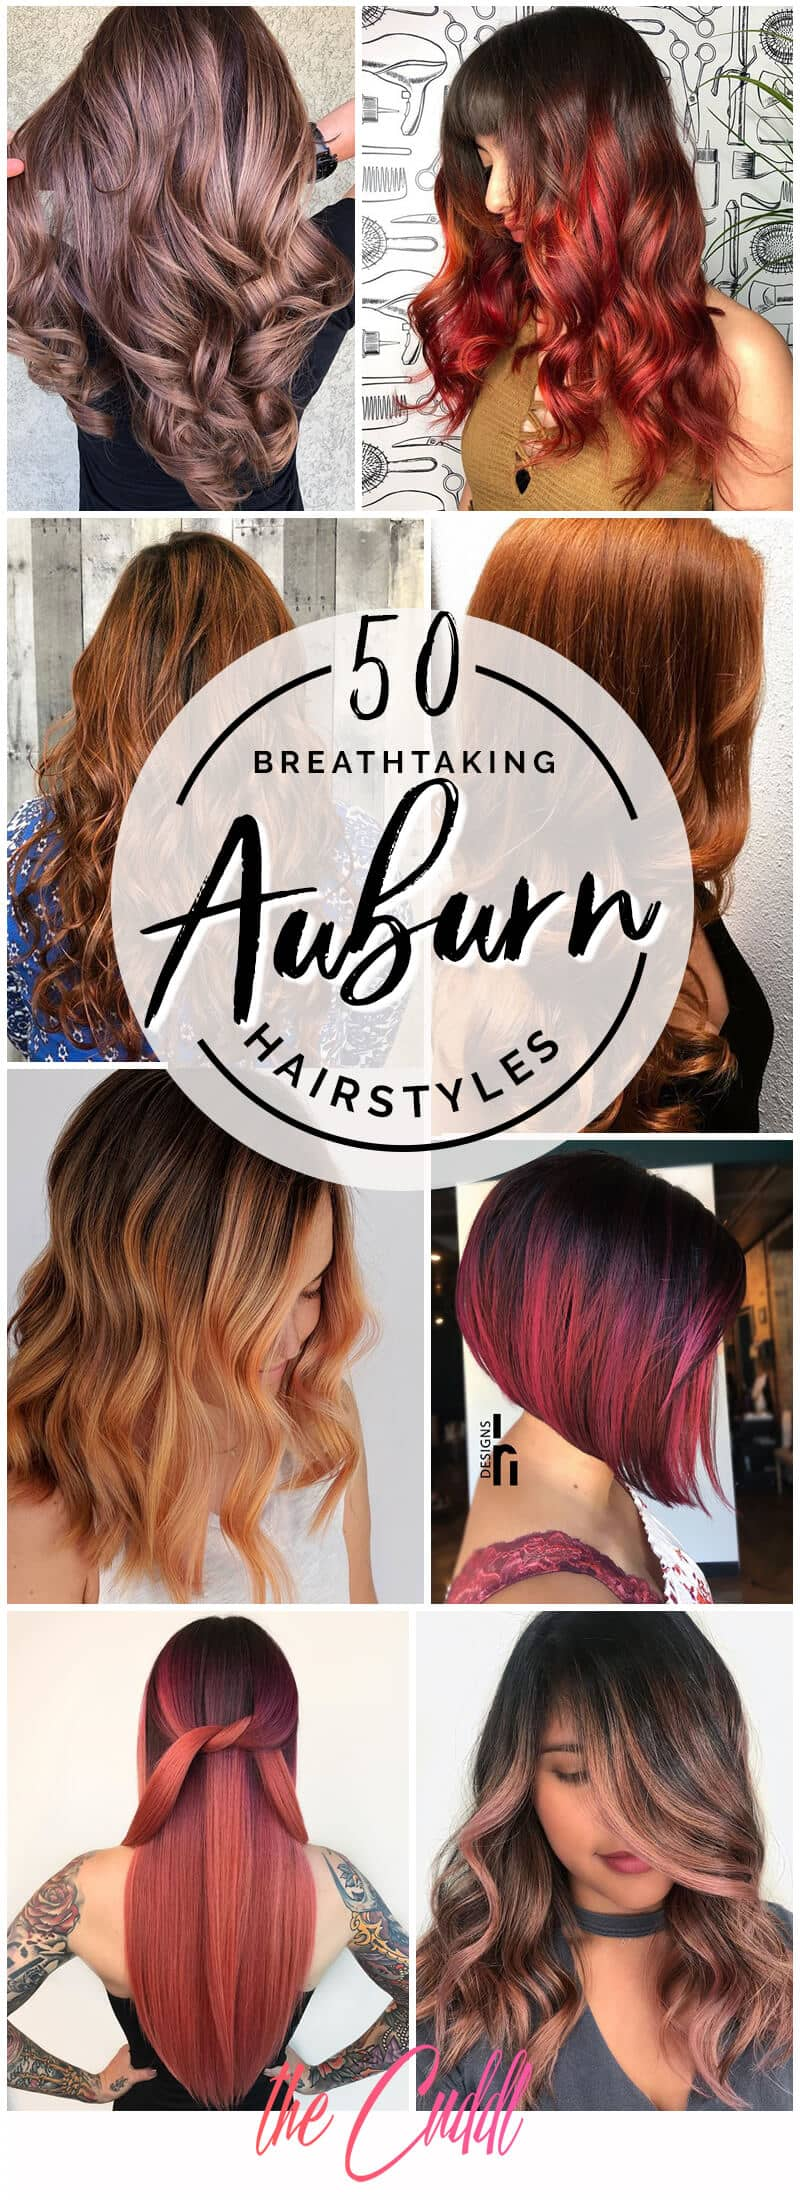 50 Breathtaking Auburn Hair Ideas To Level Up Your Look